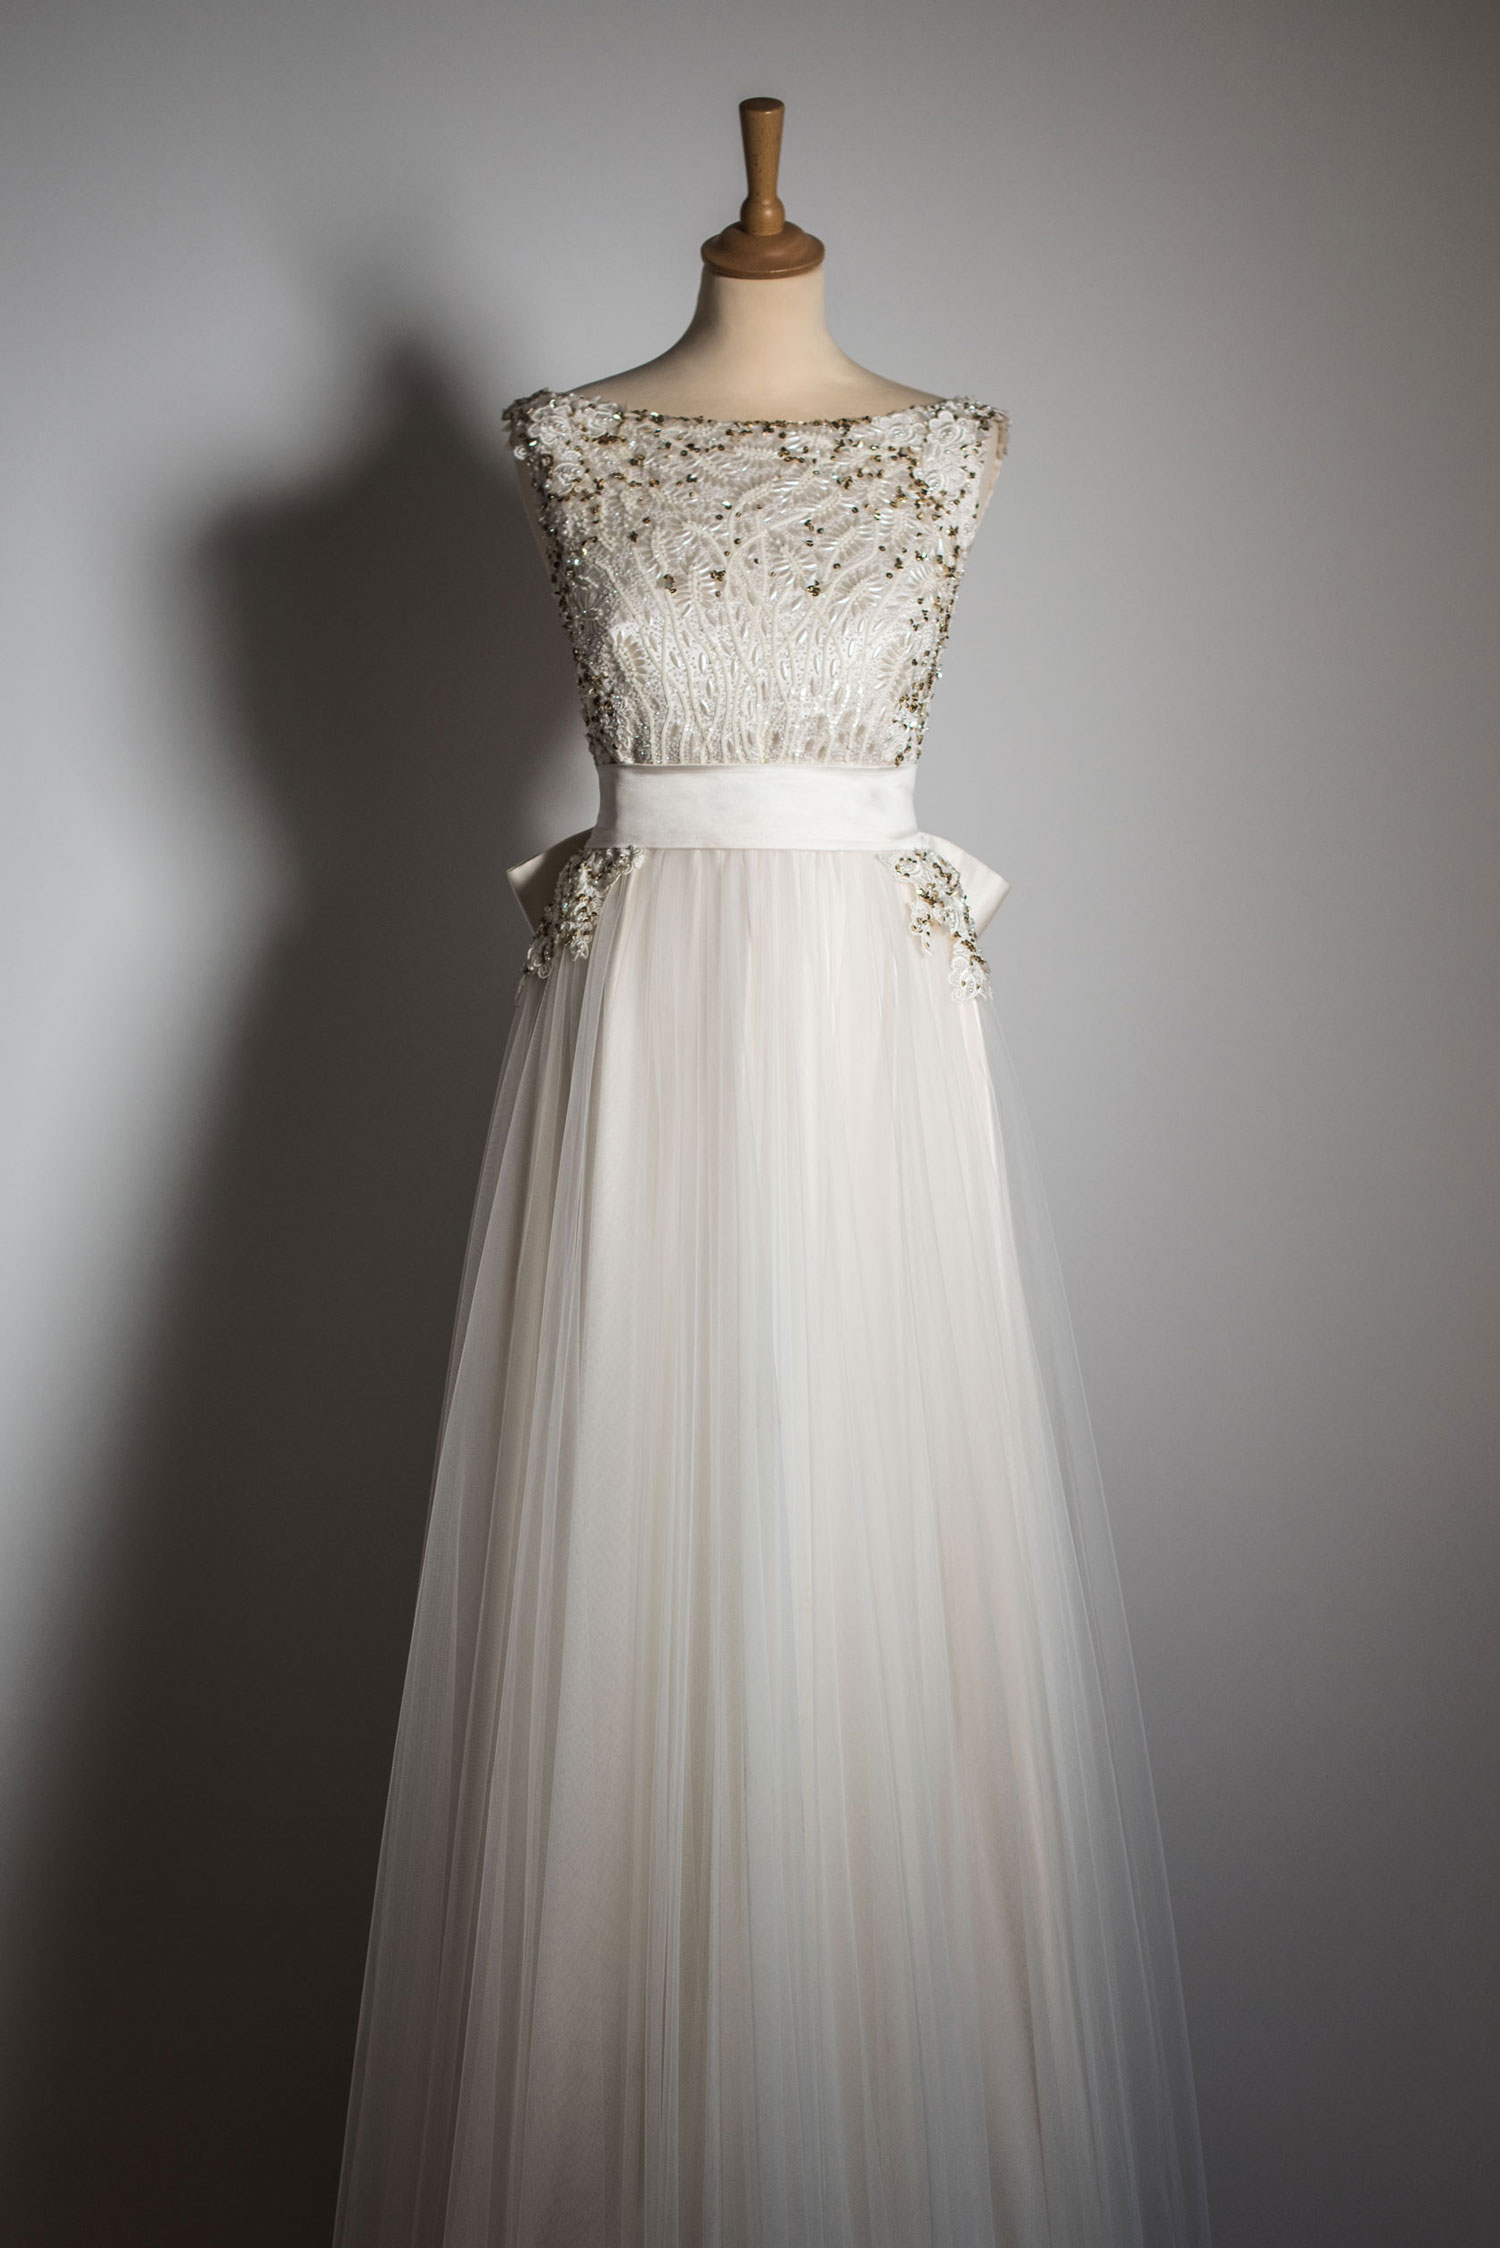 The wedding dress front